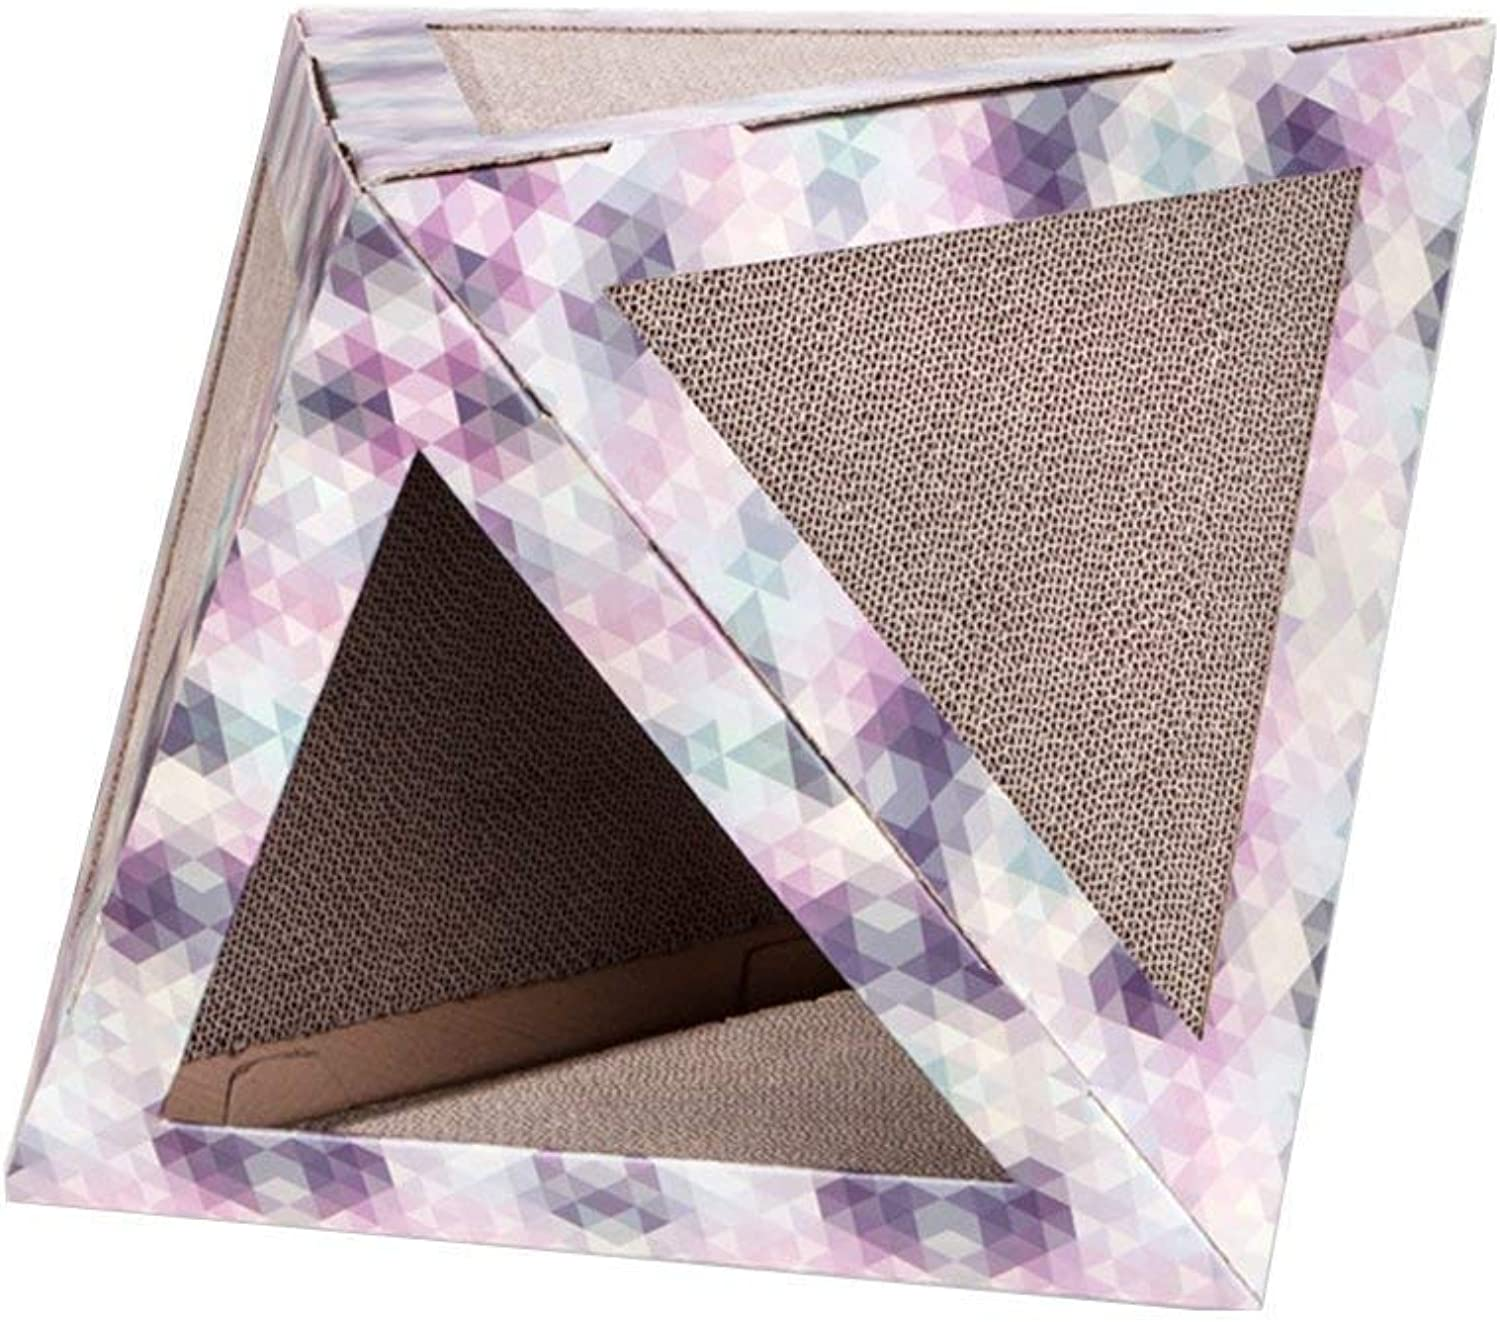 AYLS Cat Scratch Board Cat House Corrugated Paper House Recyclable Cardboard Predect Your Furniture Scratch Pad Pad Cat Indoor Apartment Activity Center